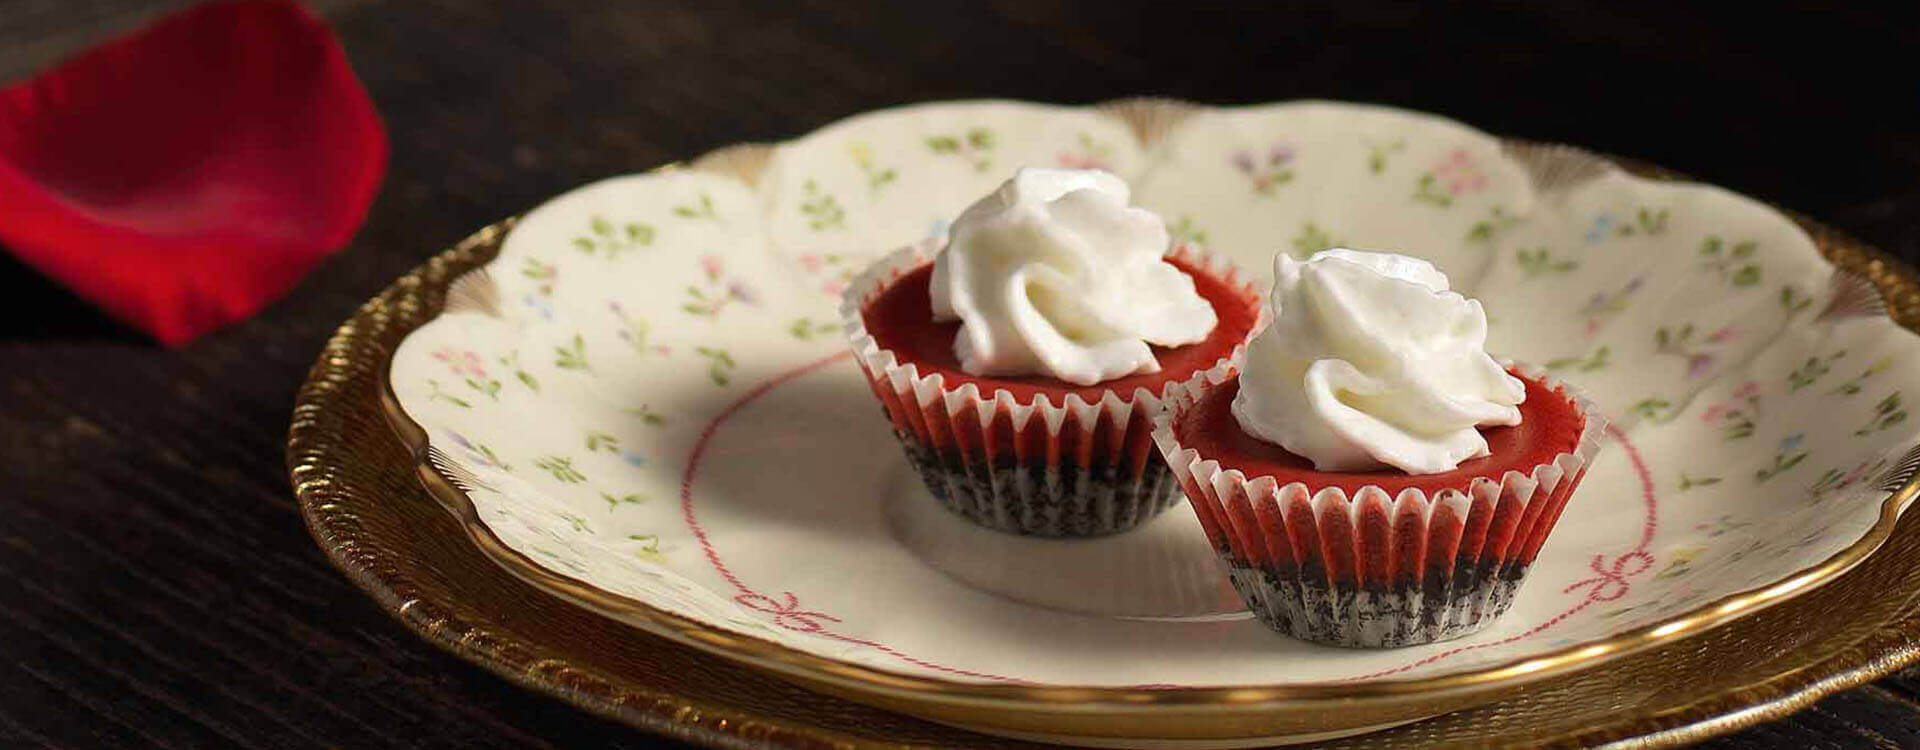 Red Velvet Mini Cheesecakes